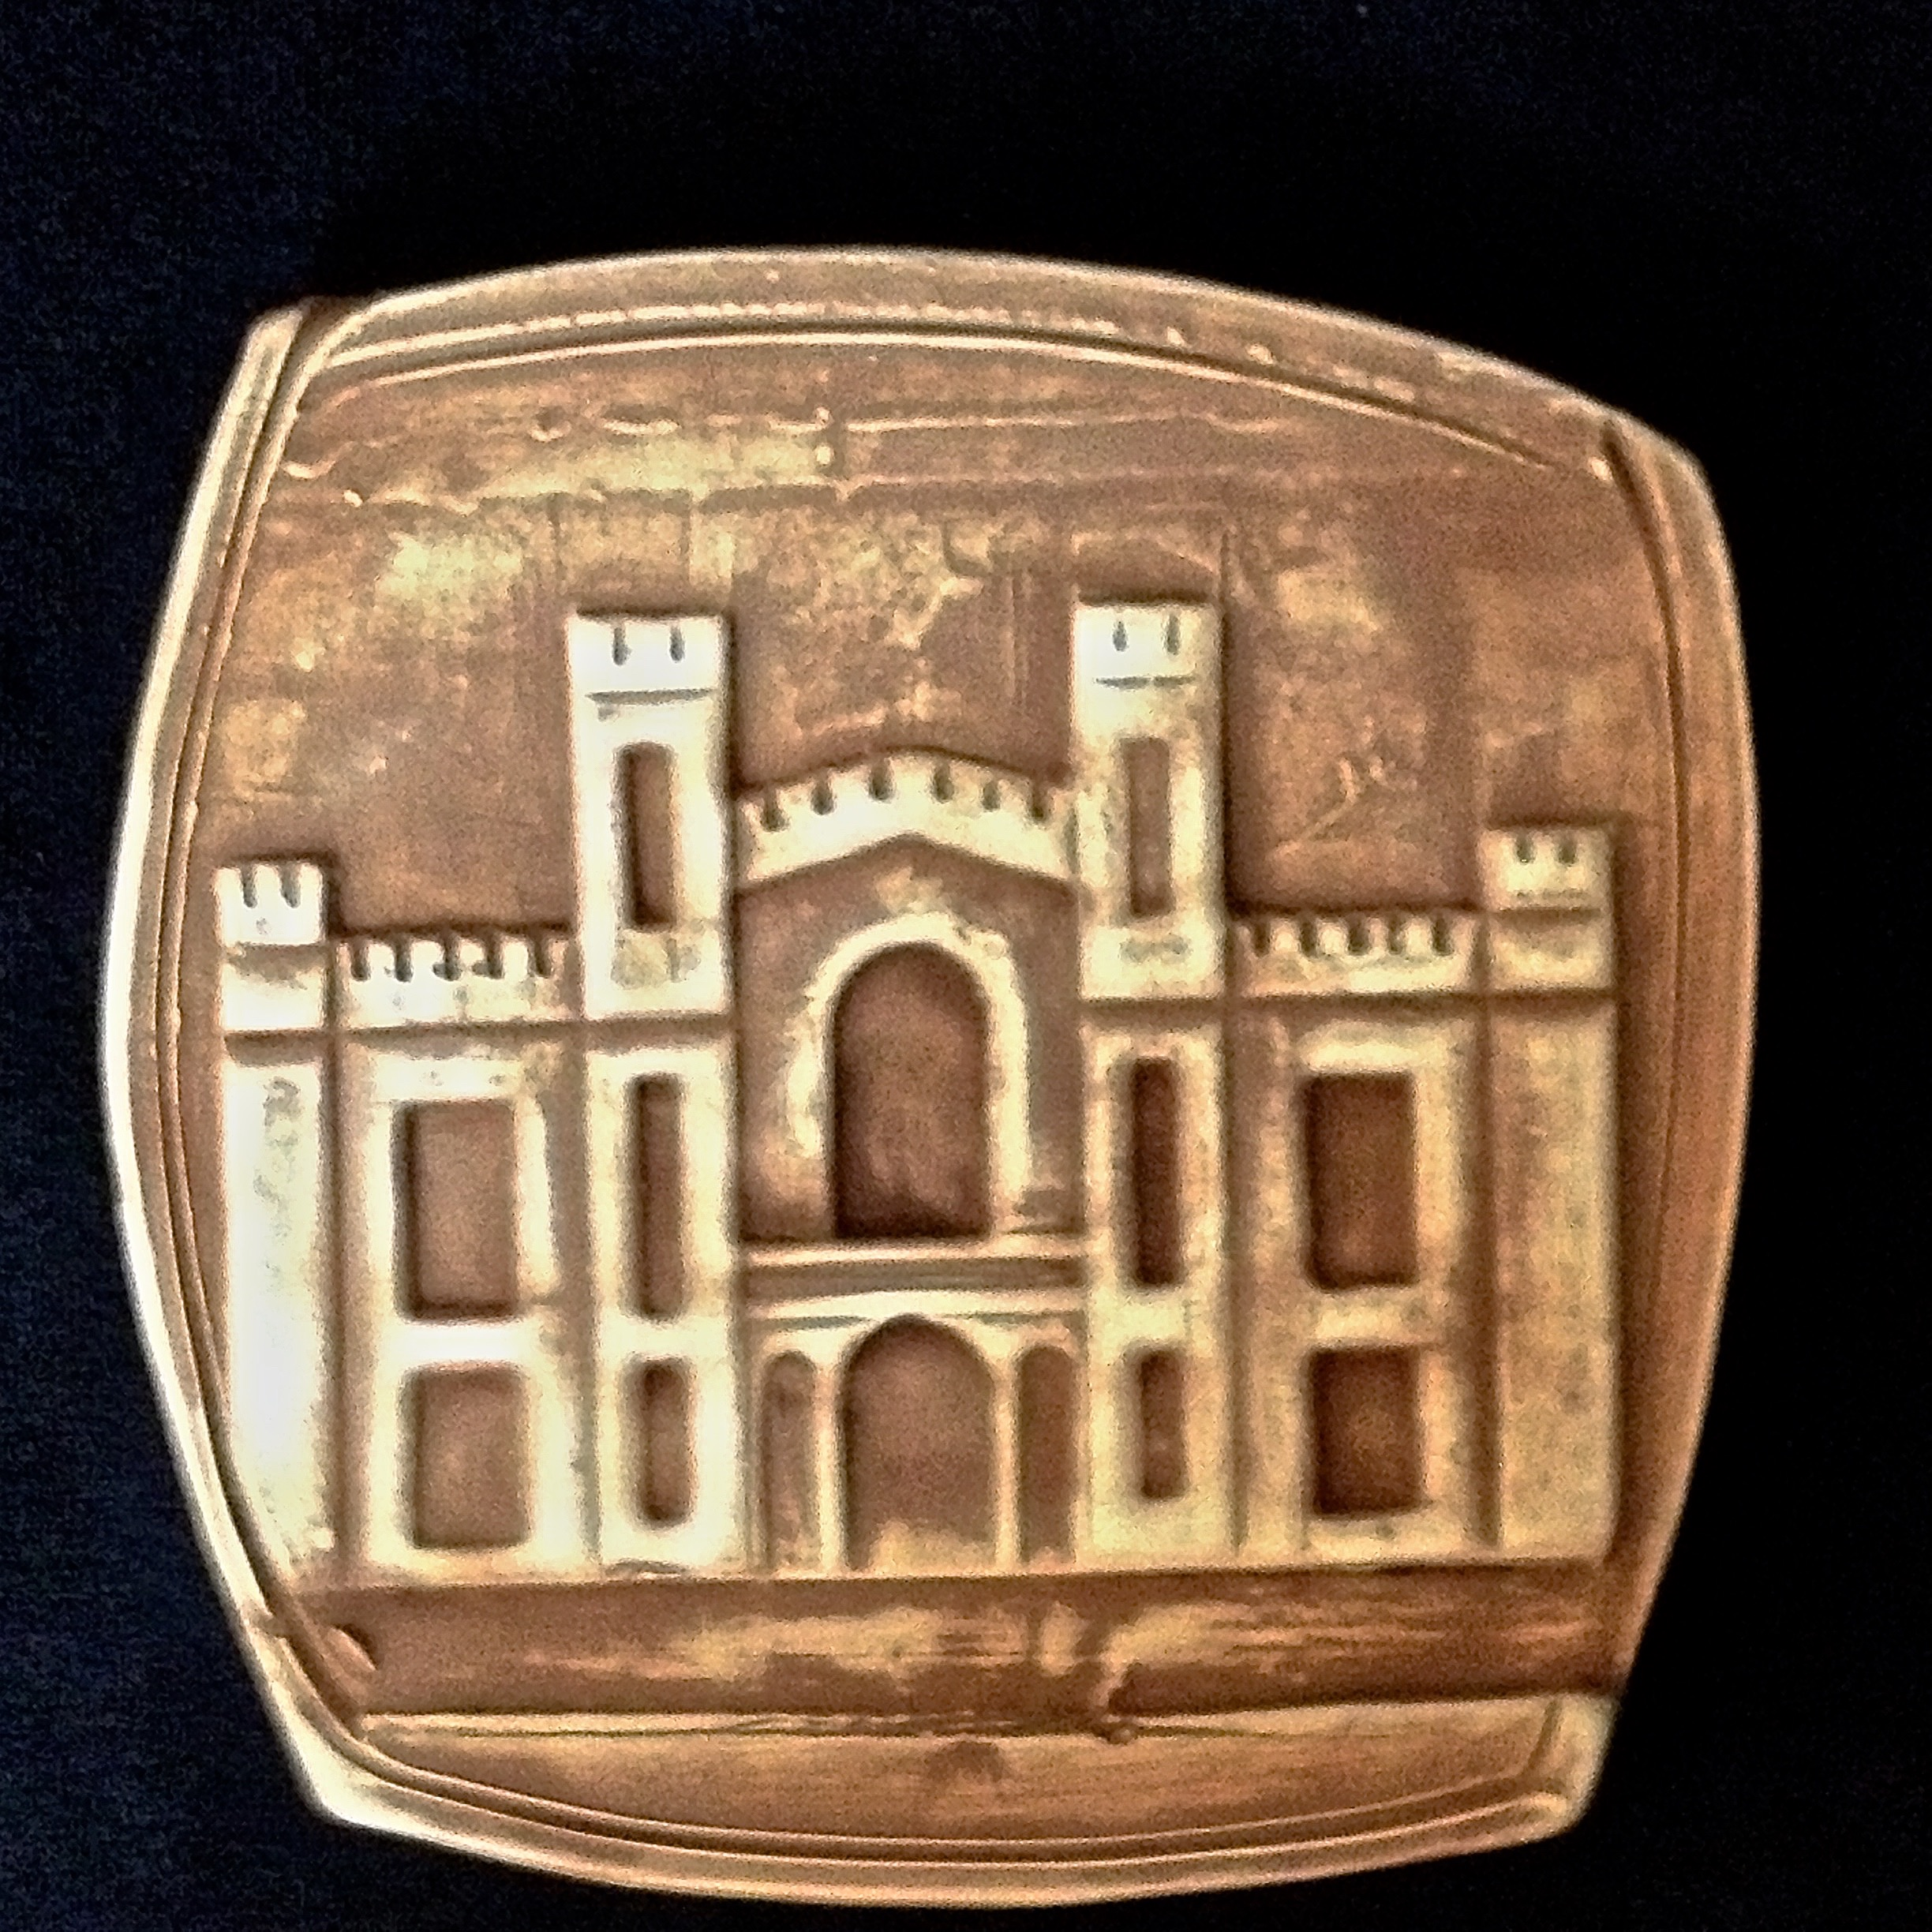 WADSWORTH ATHENEUM COASTER     $15.00